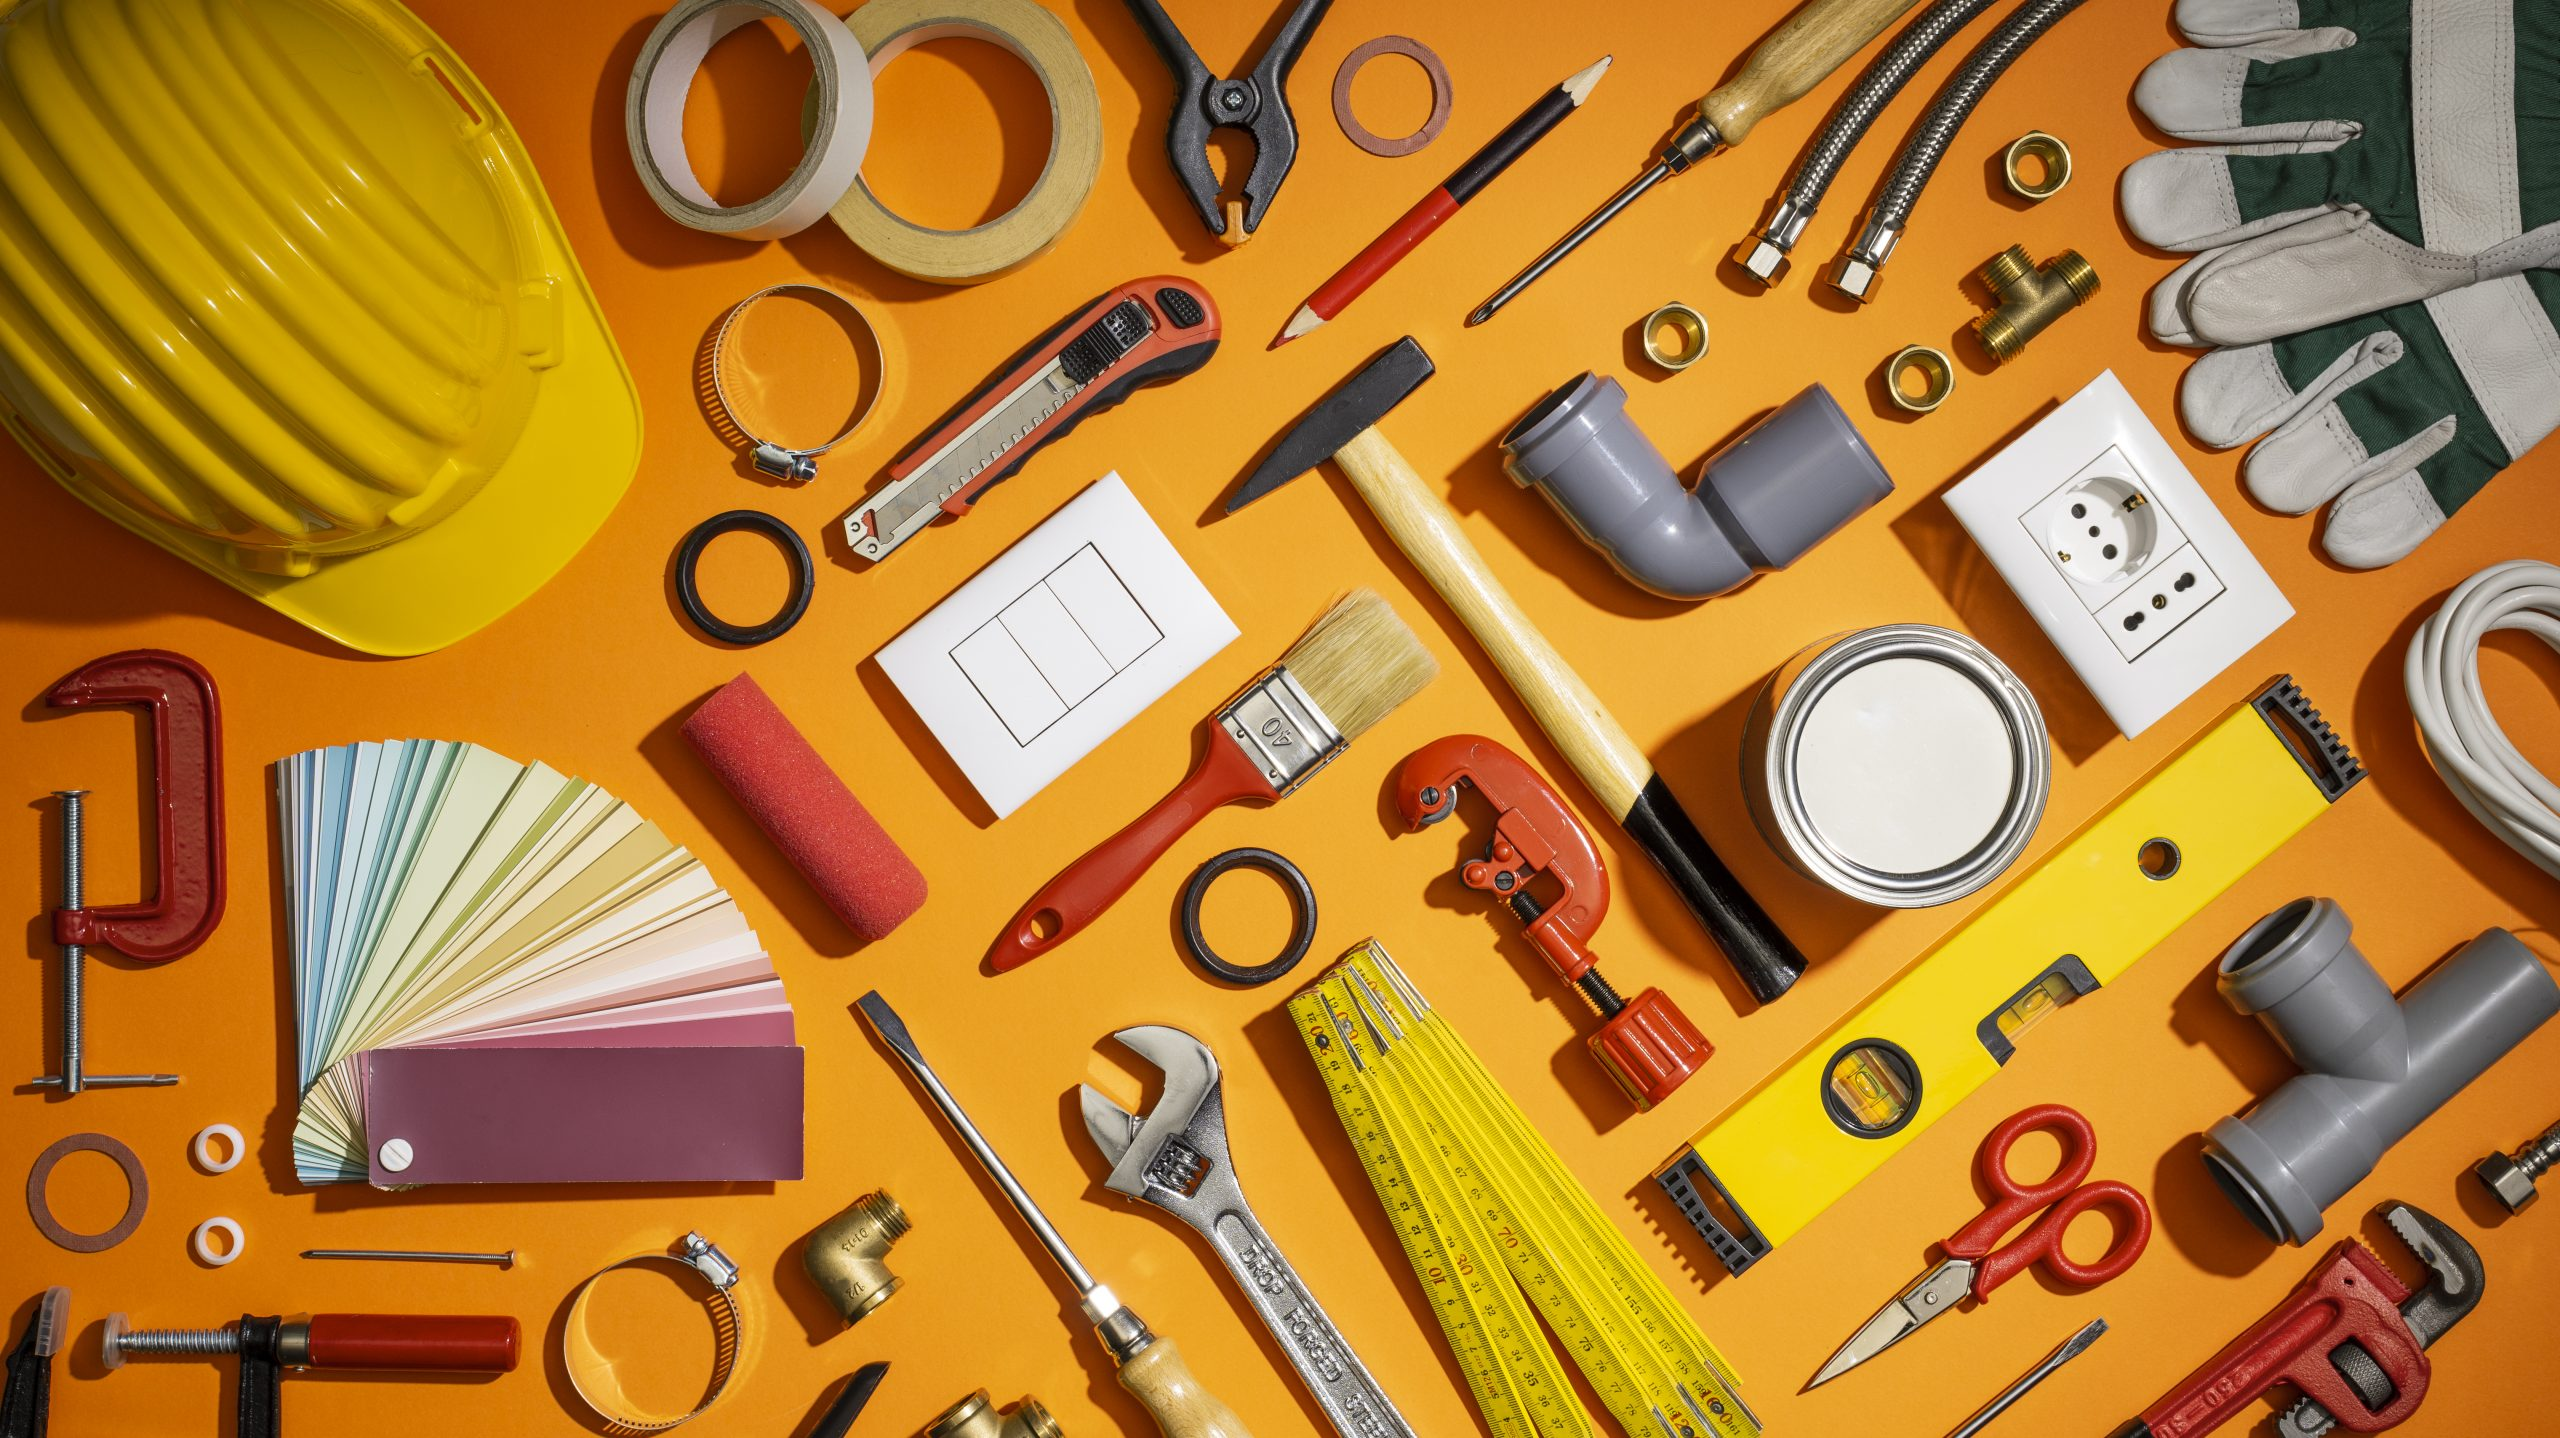 Do it yourself, repair and home renovation tools collection, flat lay